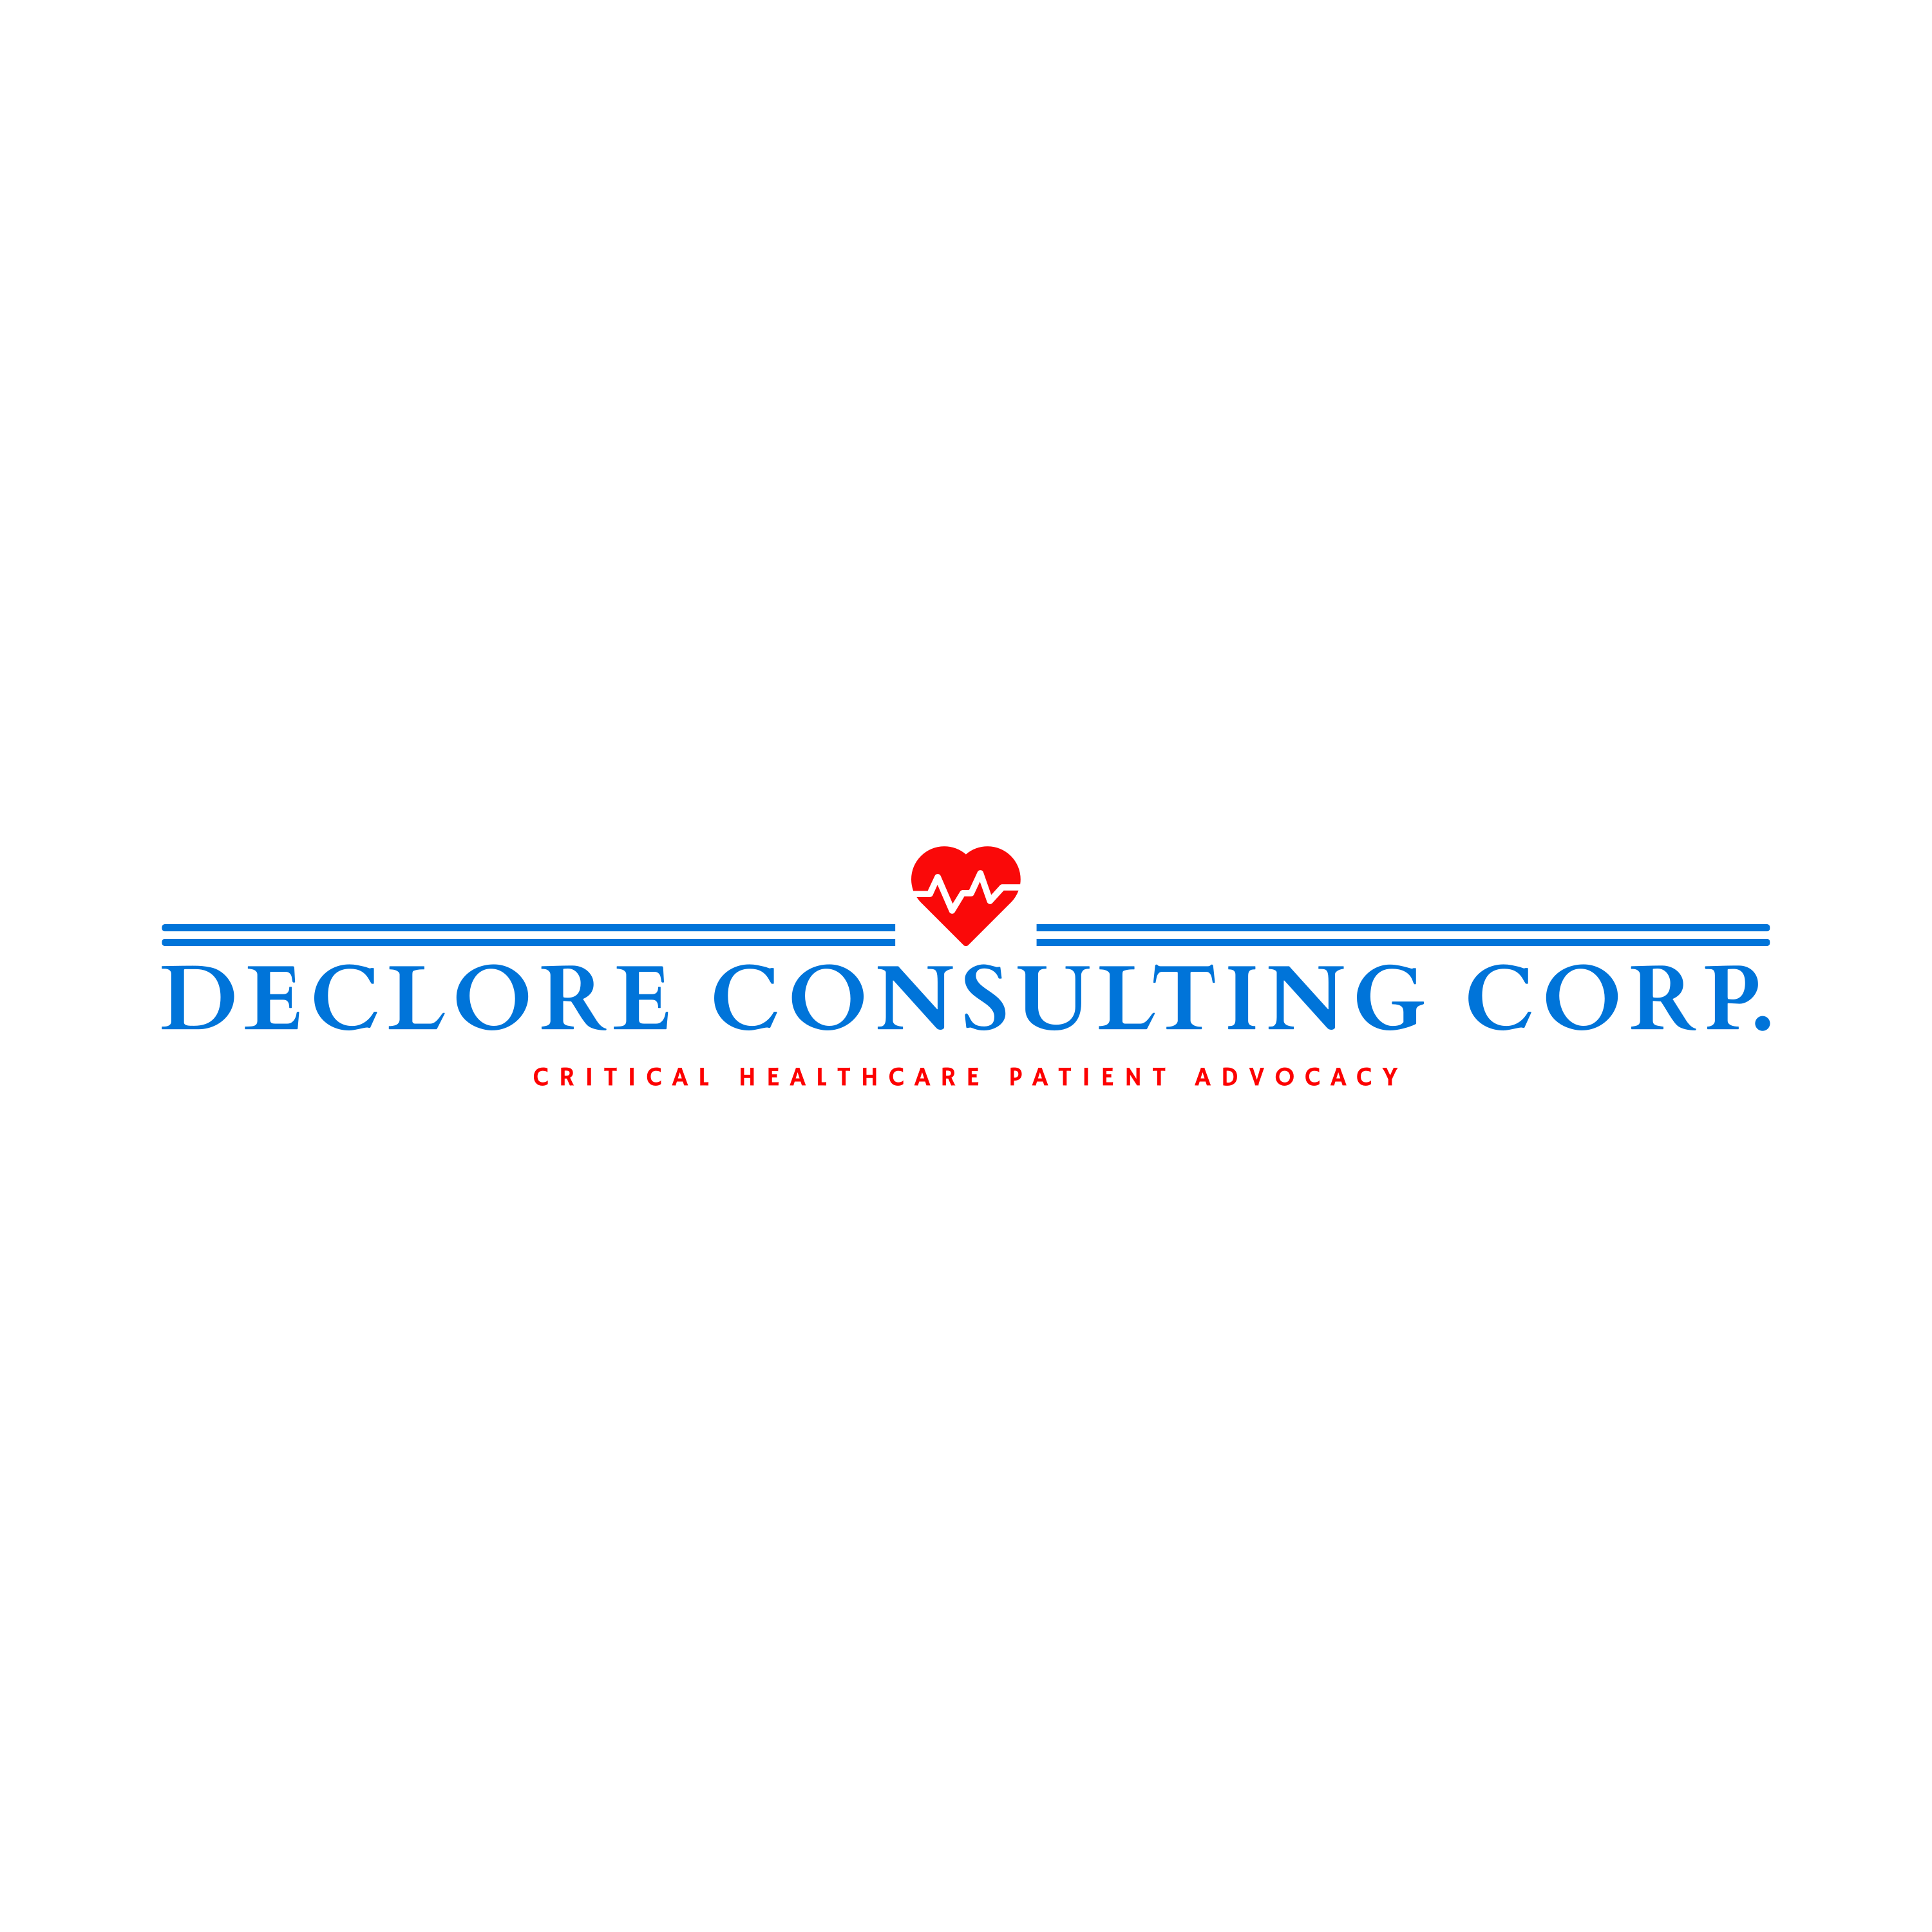 DECLORE CONSULTING CORP.